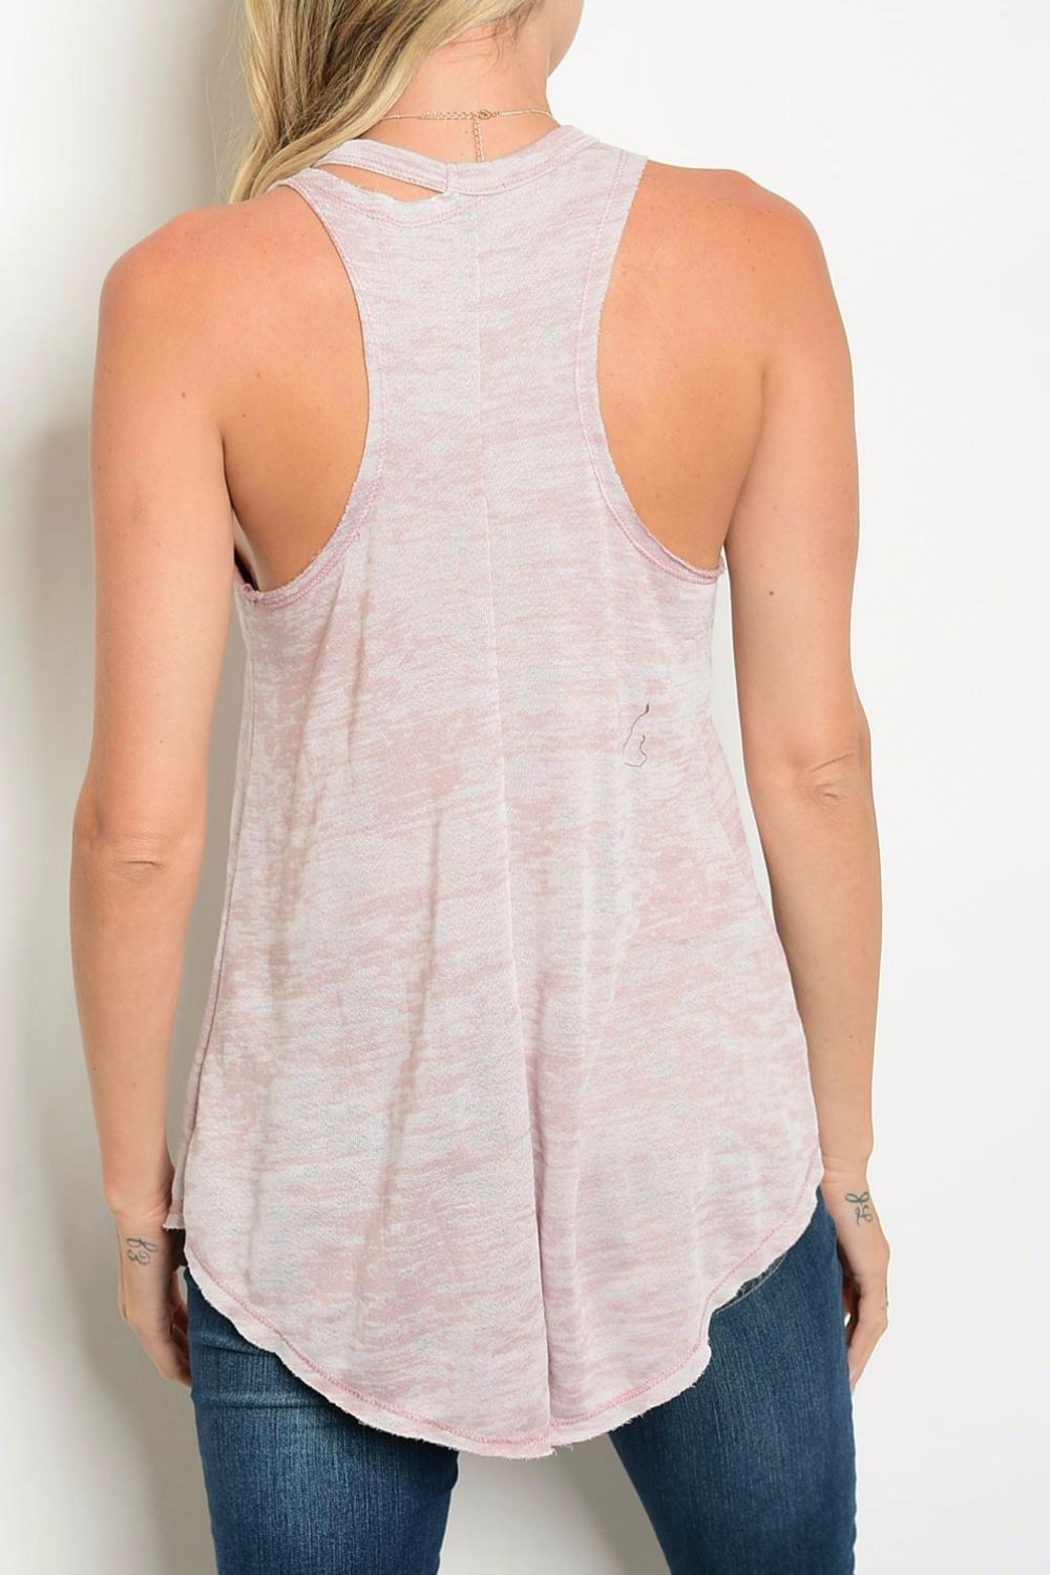 Sweet Claire Pink Wash Tank Top - Front Full Image